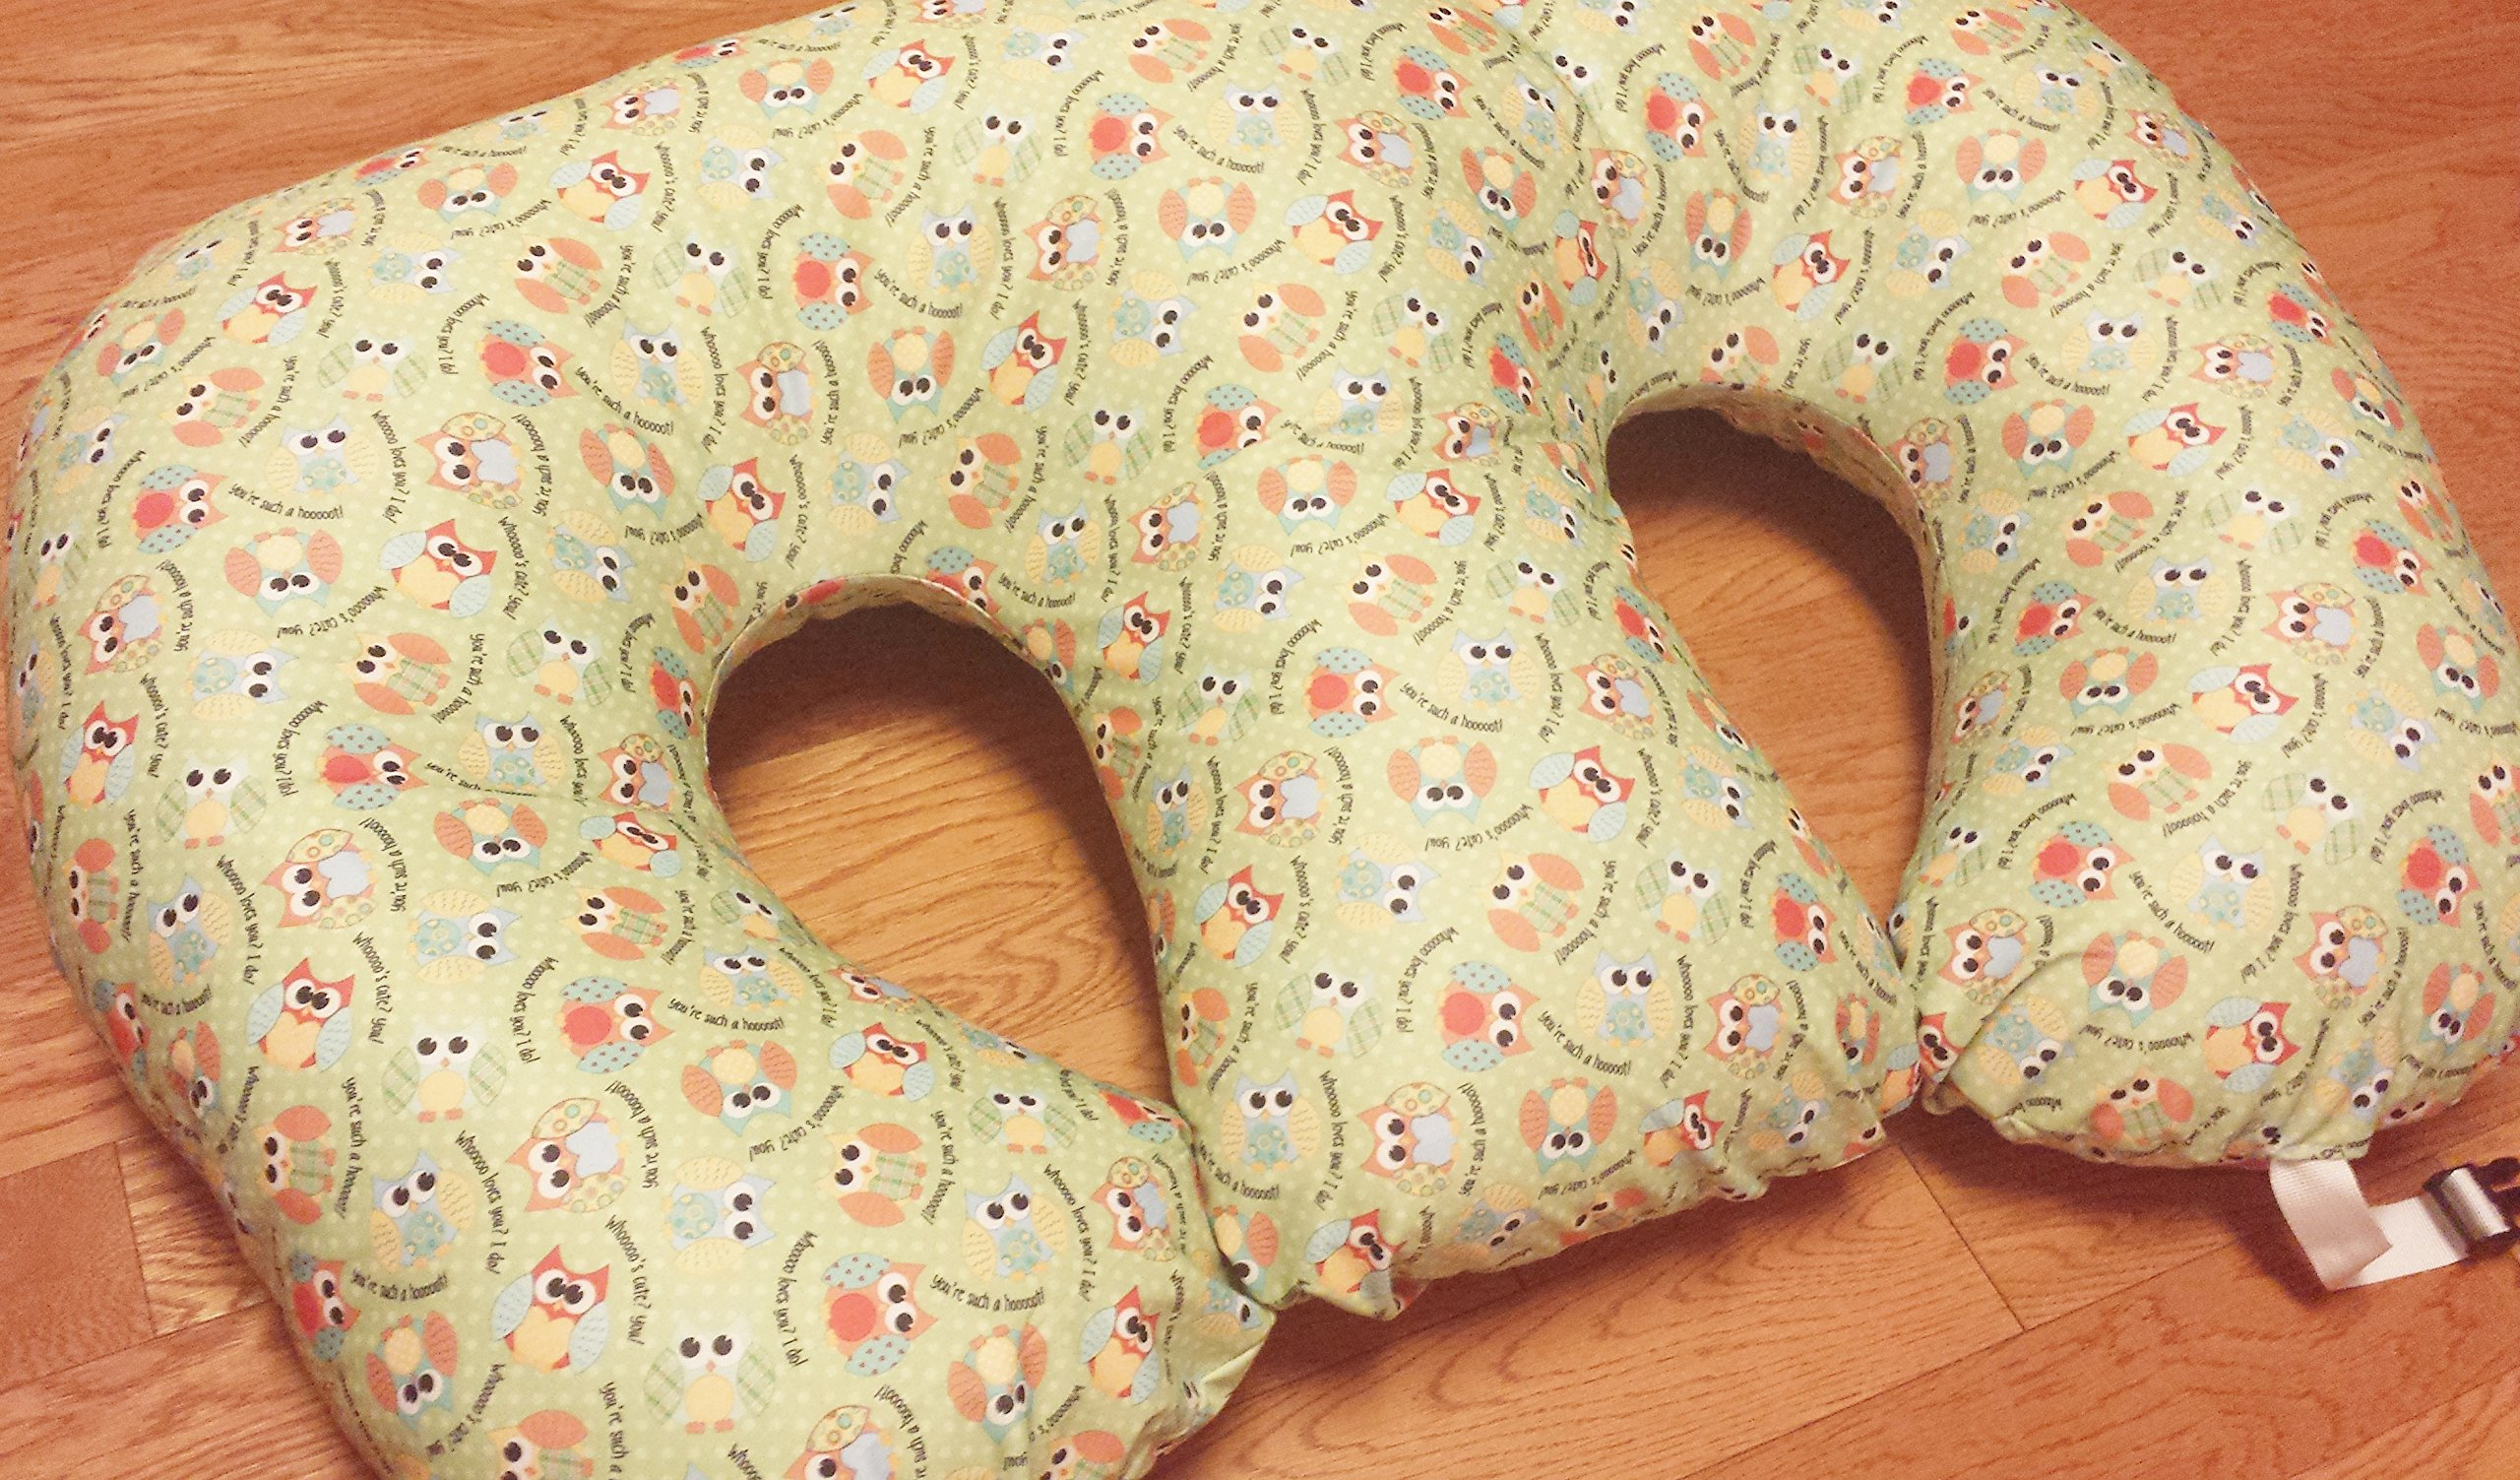 THE TWIN Z PILLOW - Waterproof OWLS Pillow - The only 6 in 1 Twin Pillow Breastfeeding, Bottlefeeding, Tummy Time & Support! A MUST HAVE FOR TWINS! - No extra cover by Twin Z (Image #1)